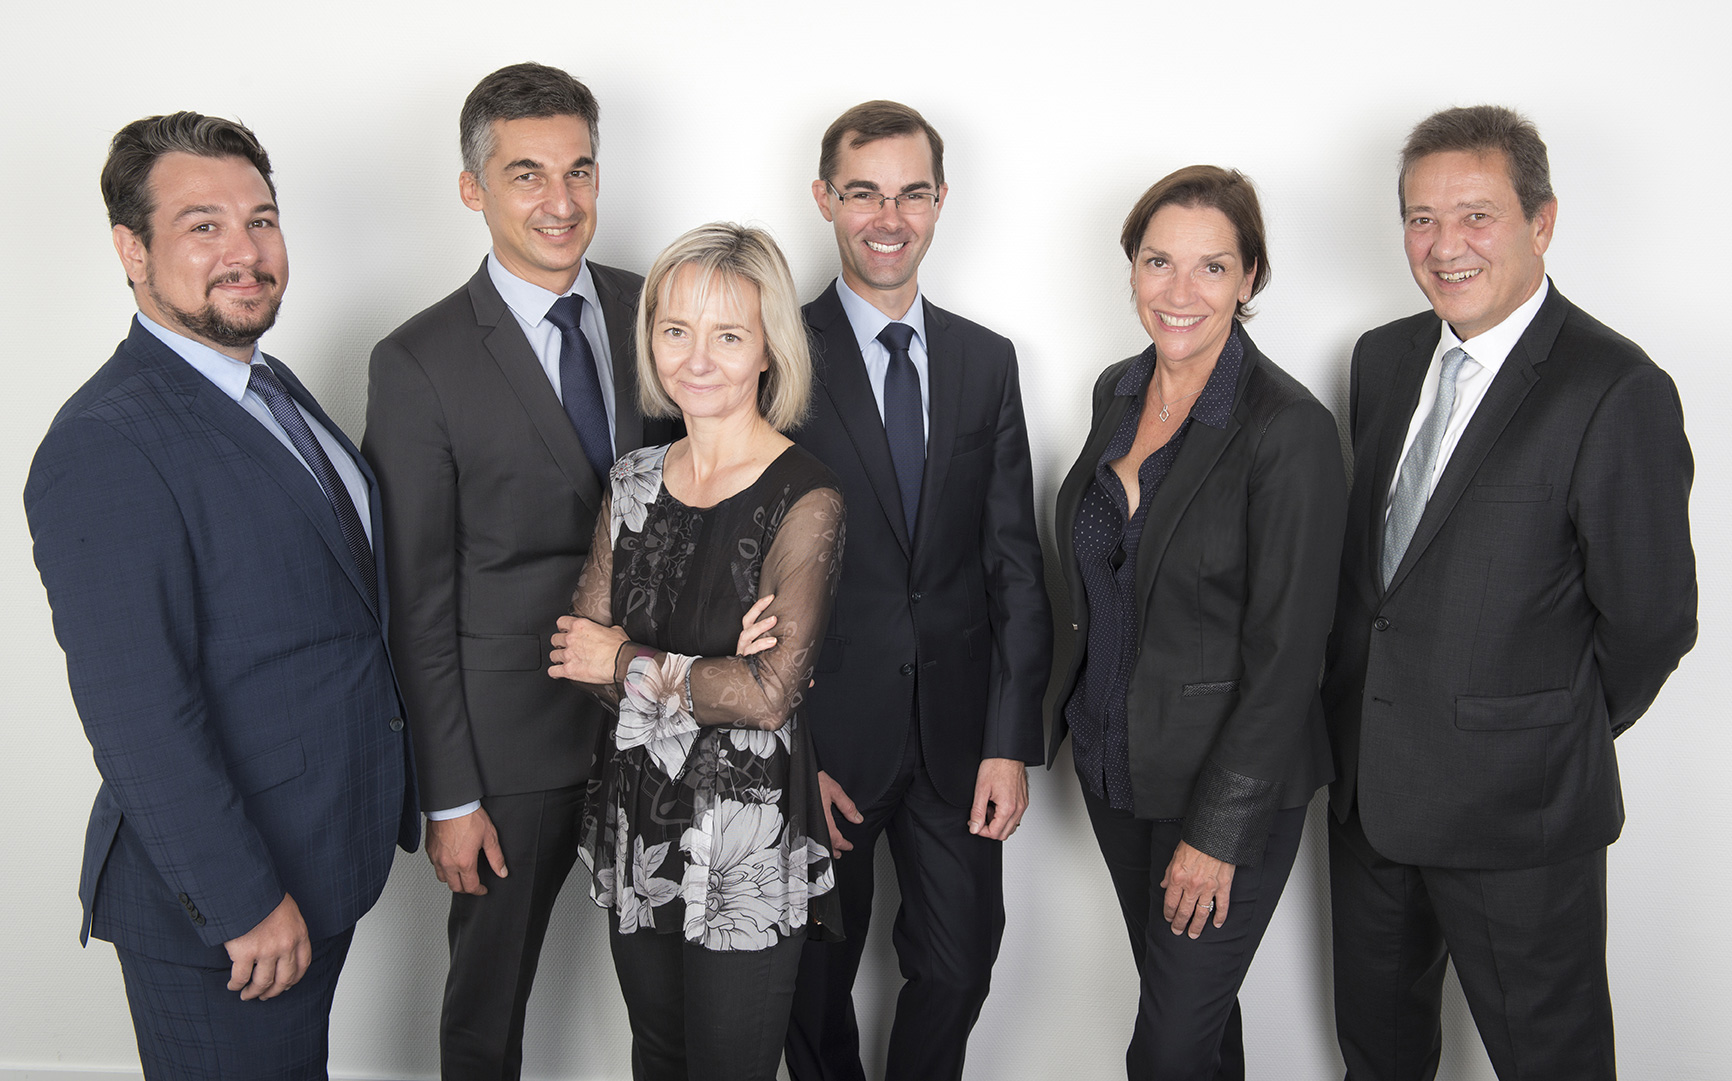 The Firm is strengthening its team